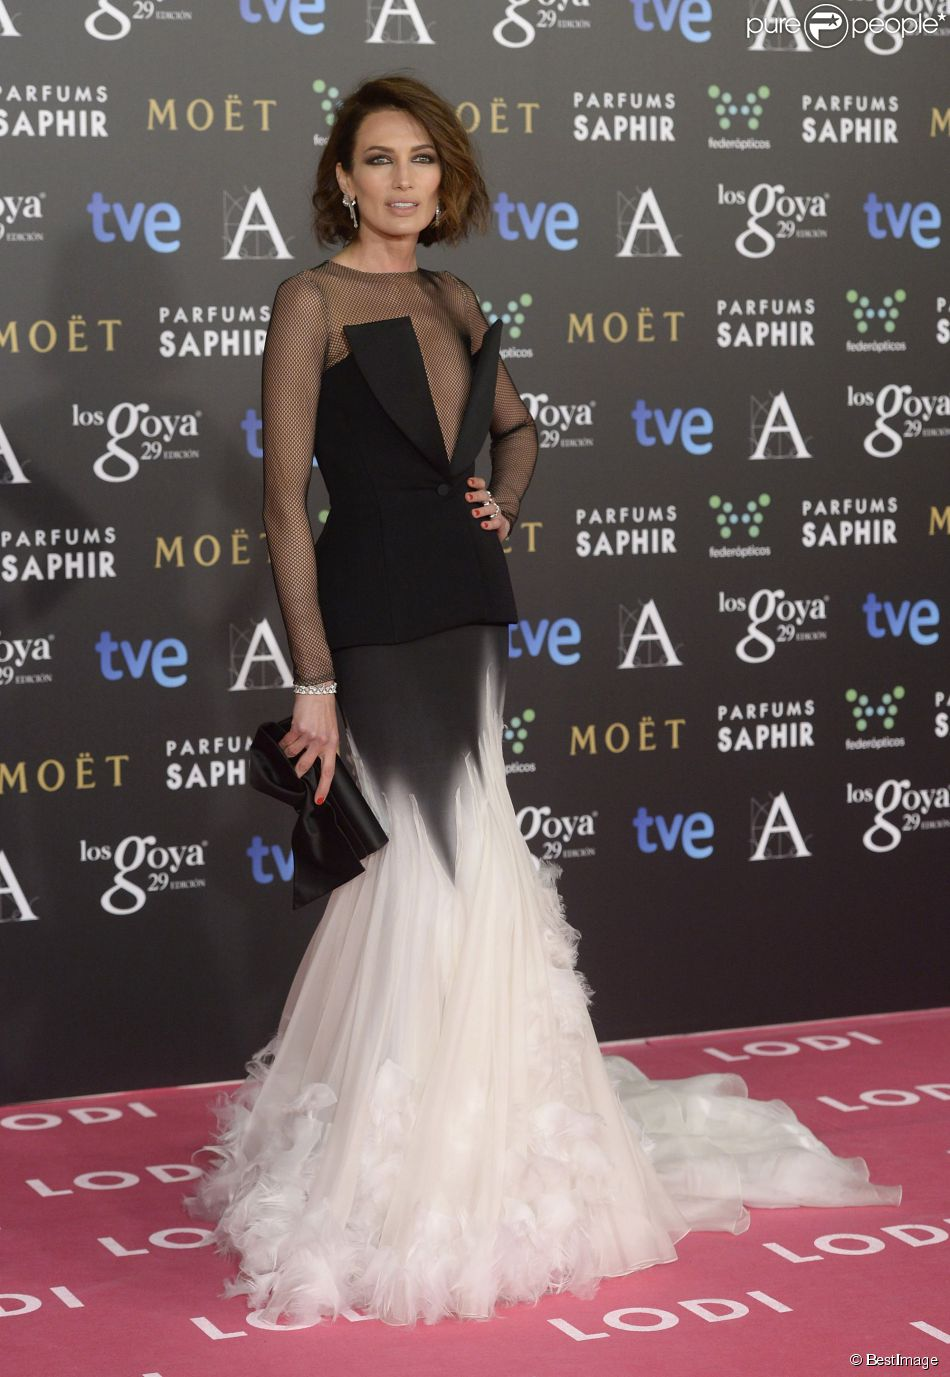 Nieves Alvarez In Stéphane Rolland Couture at the 2015 Goya Awards